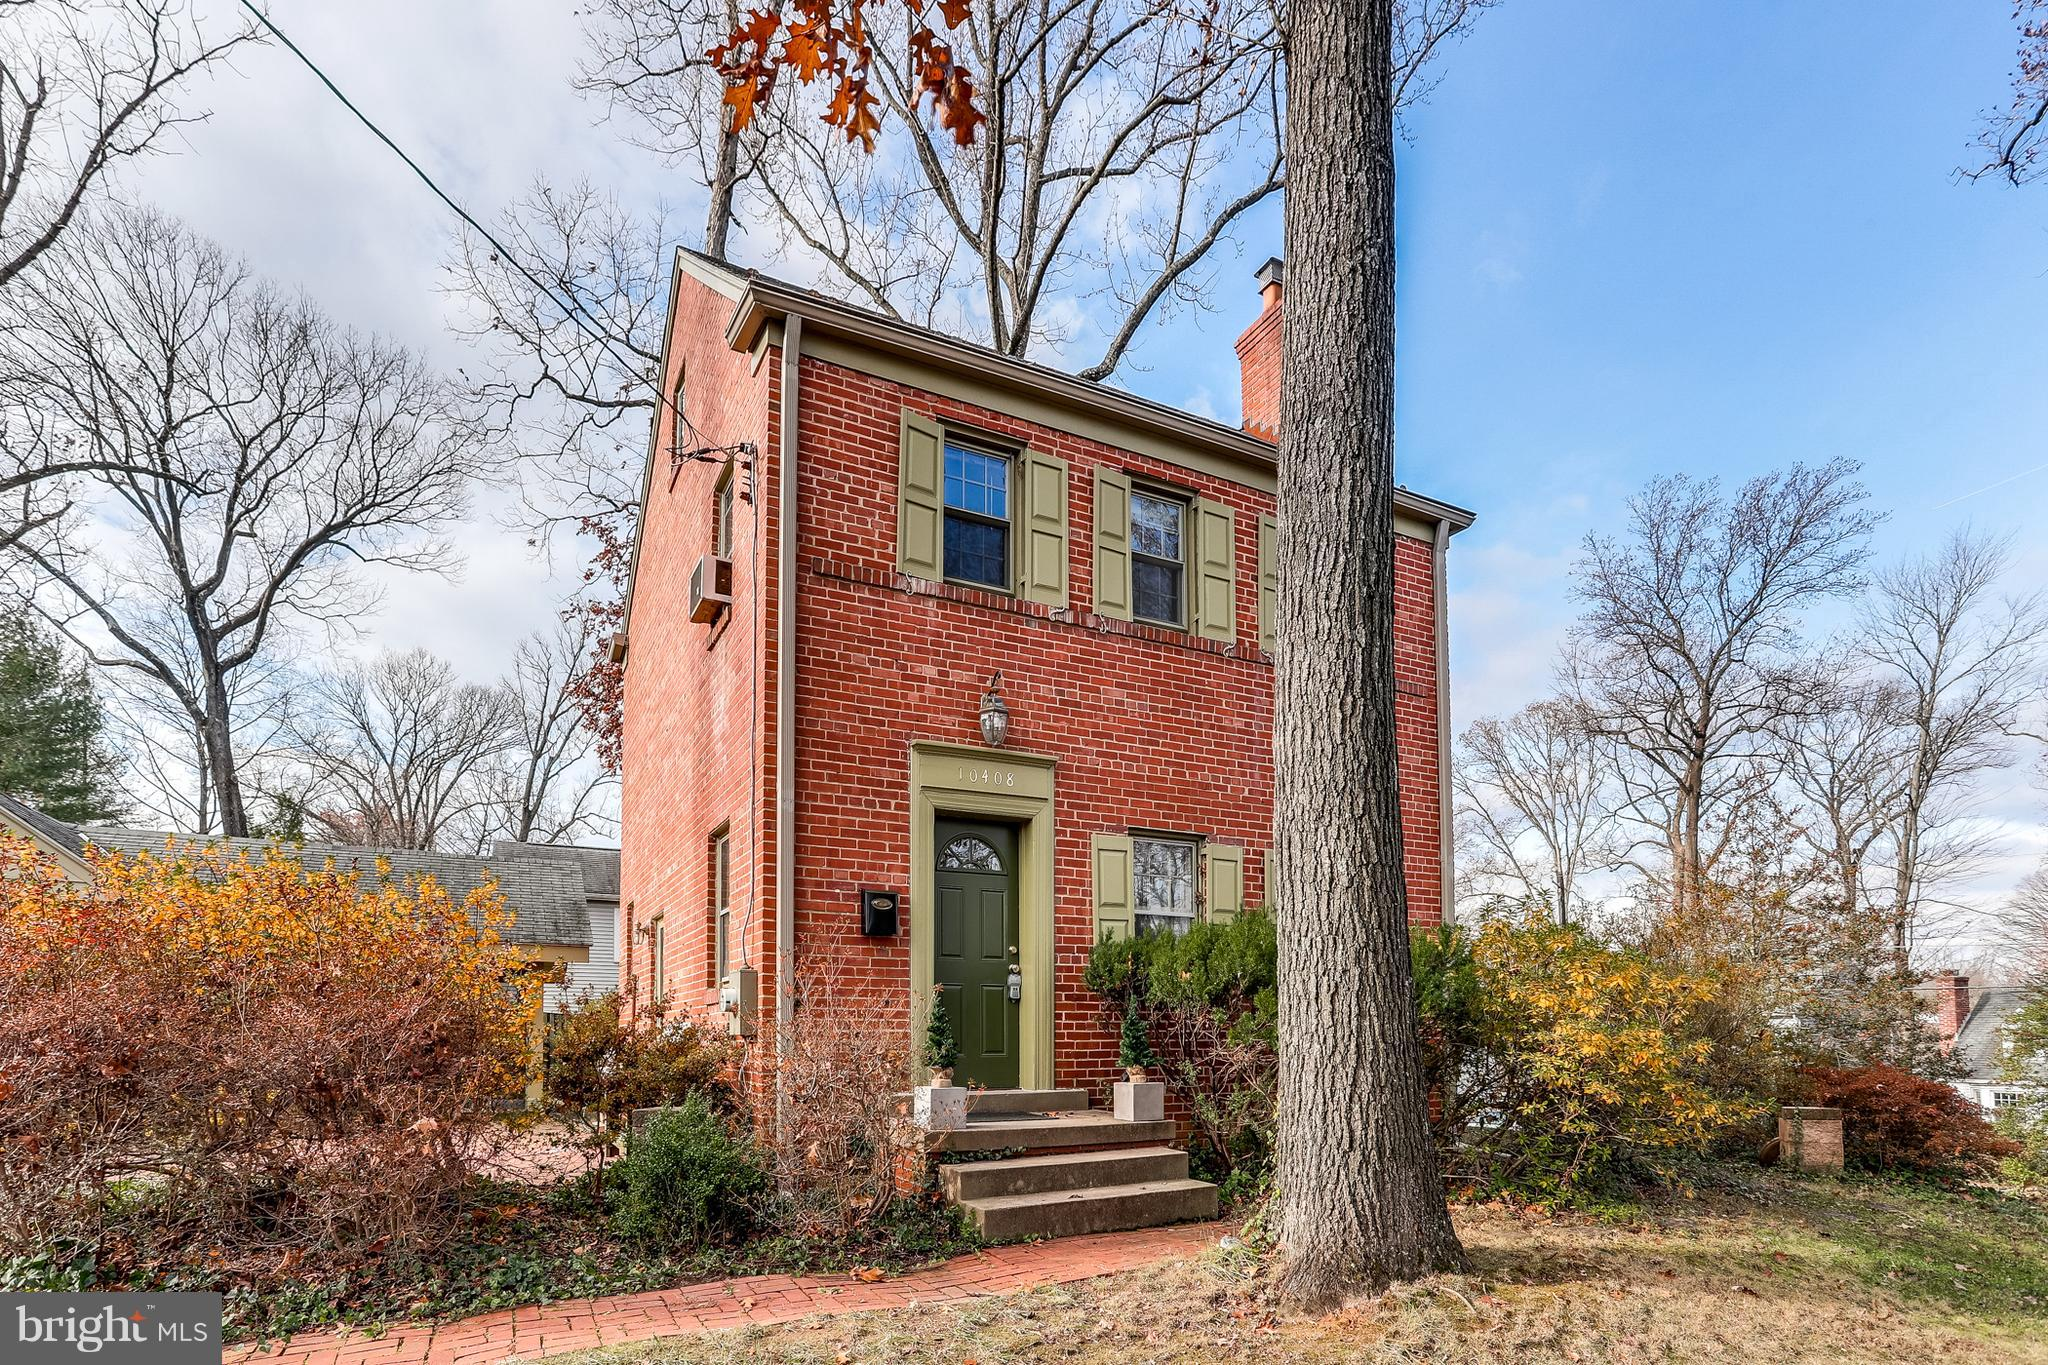 Make Haste to visit this enchanting old home on a serene lot, with mature azaleas, a holly tree to w